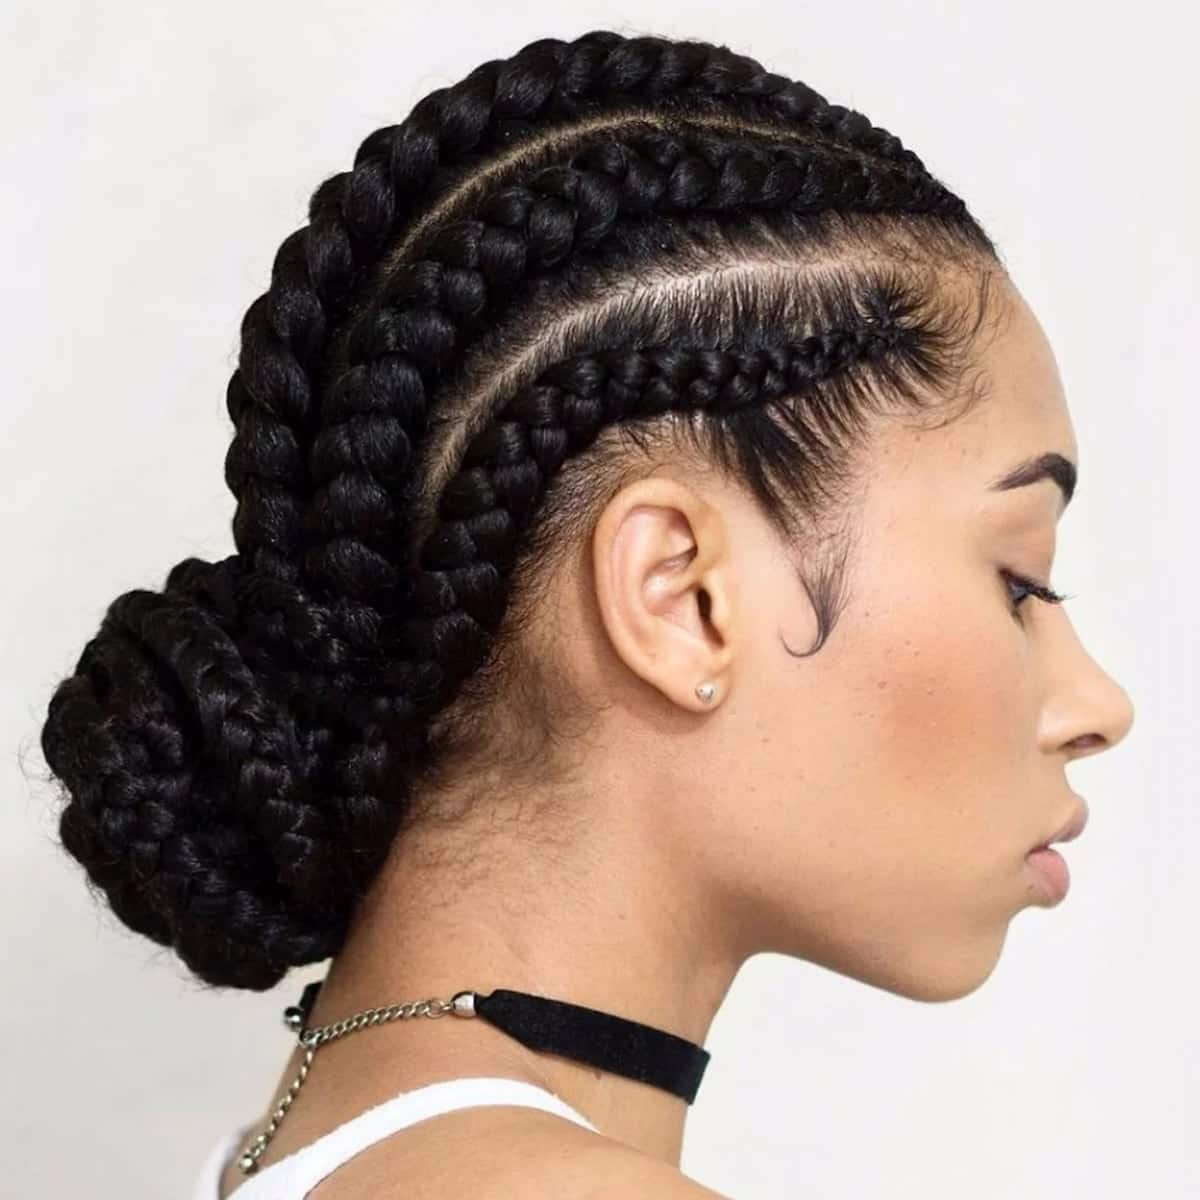 cornrow styles for black hair types of braids and braids hairstyles in yen gh 2885 | 3o3bpd3dags09m7ob